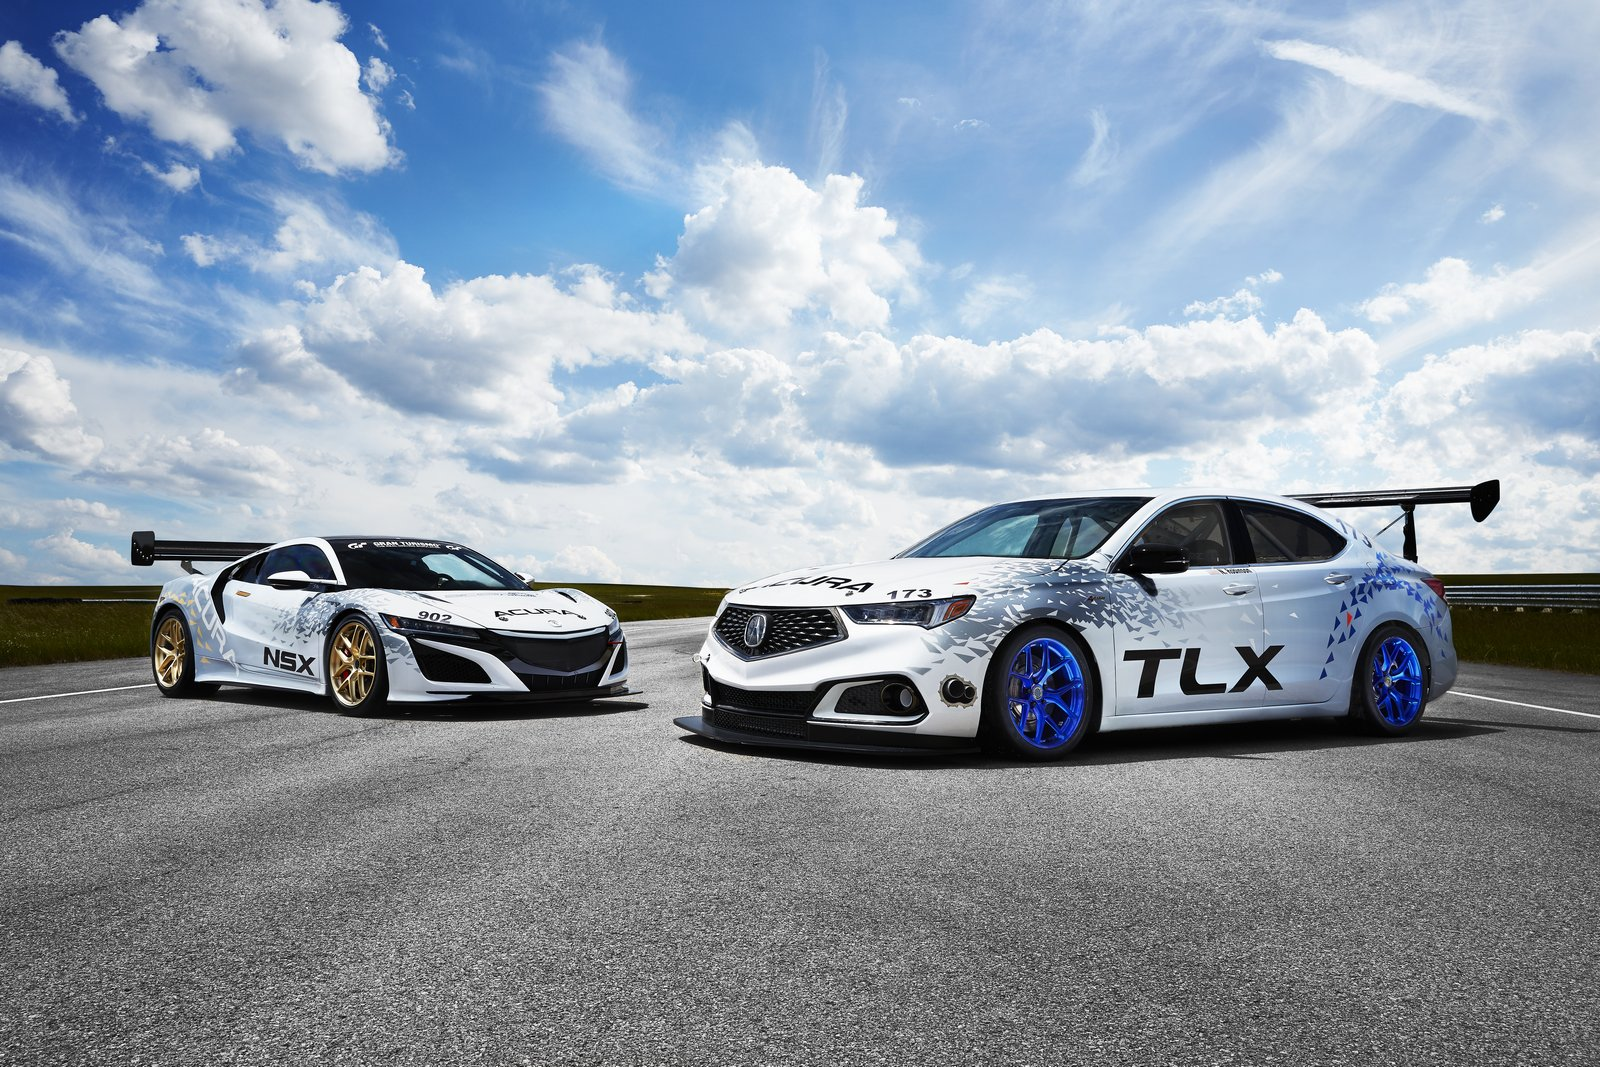 Acura Tlx Interior >> Acura NSX And TLX A-Spec To Race At Pikes Peak | Carscoops